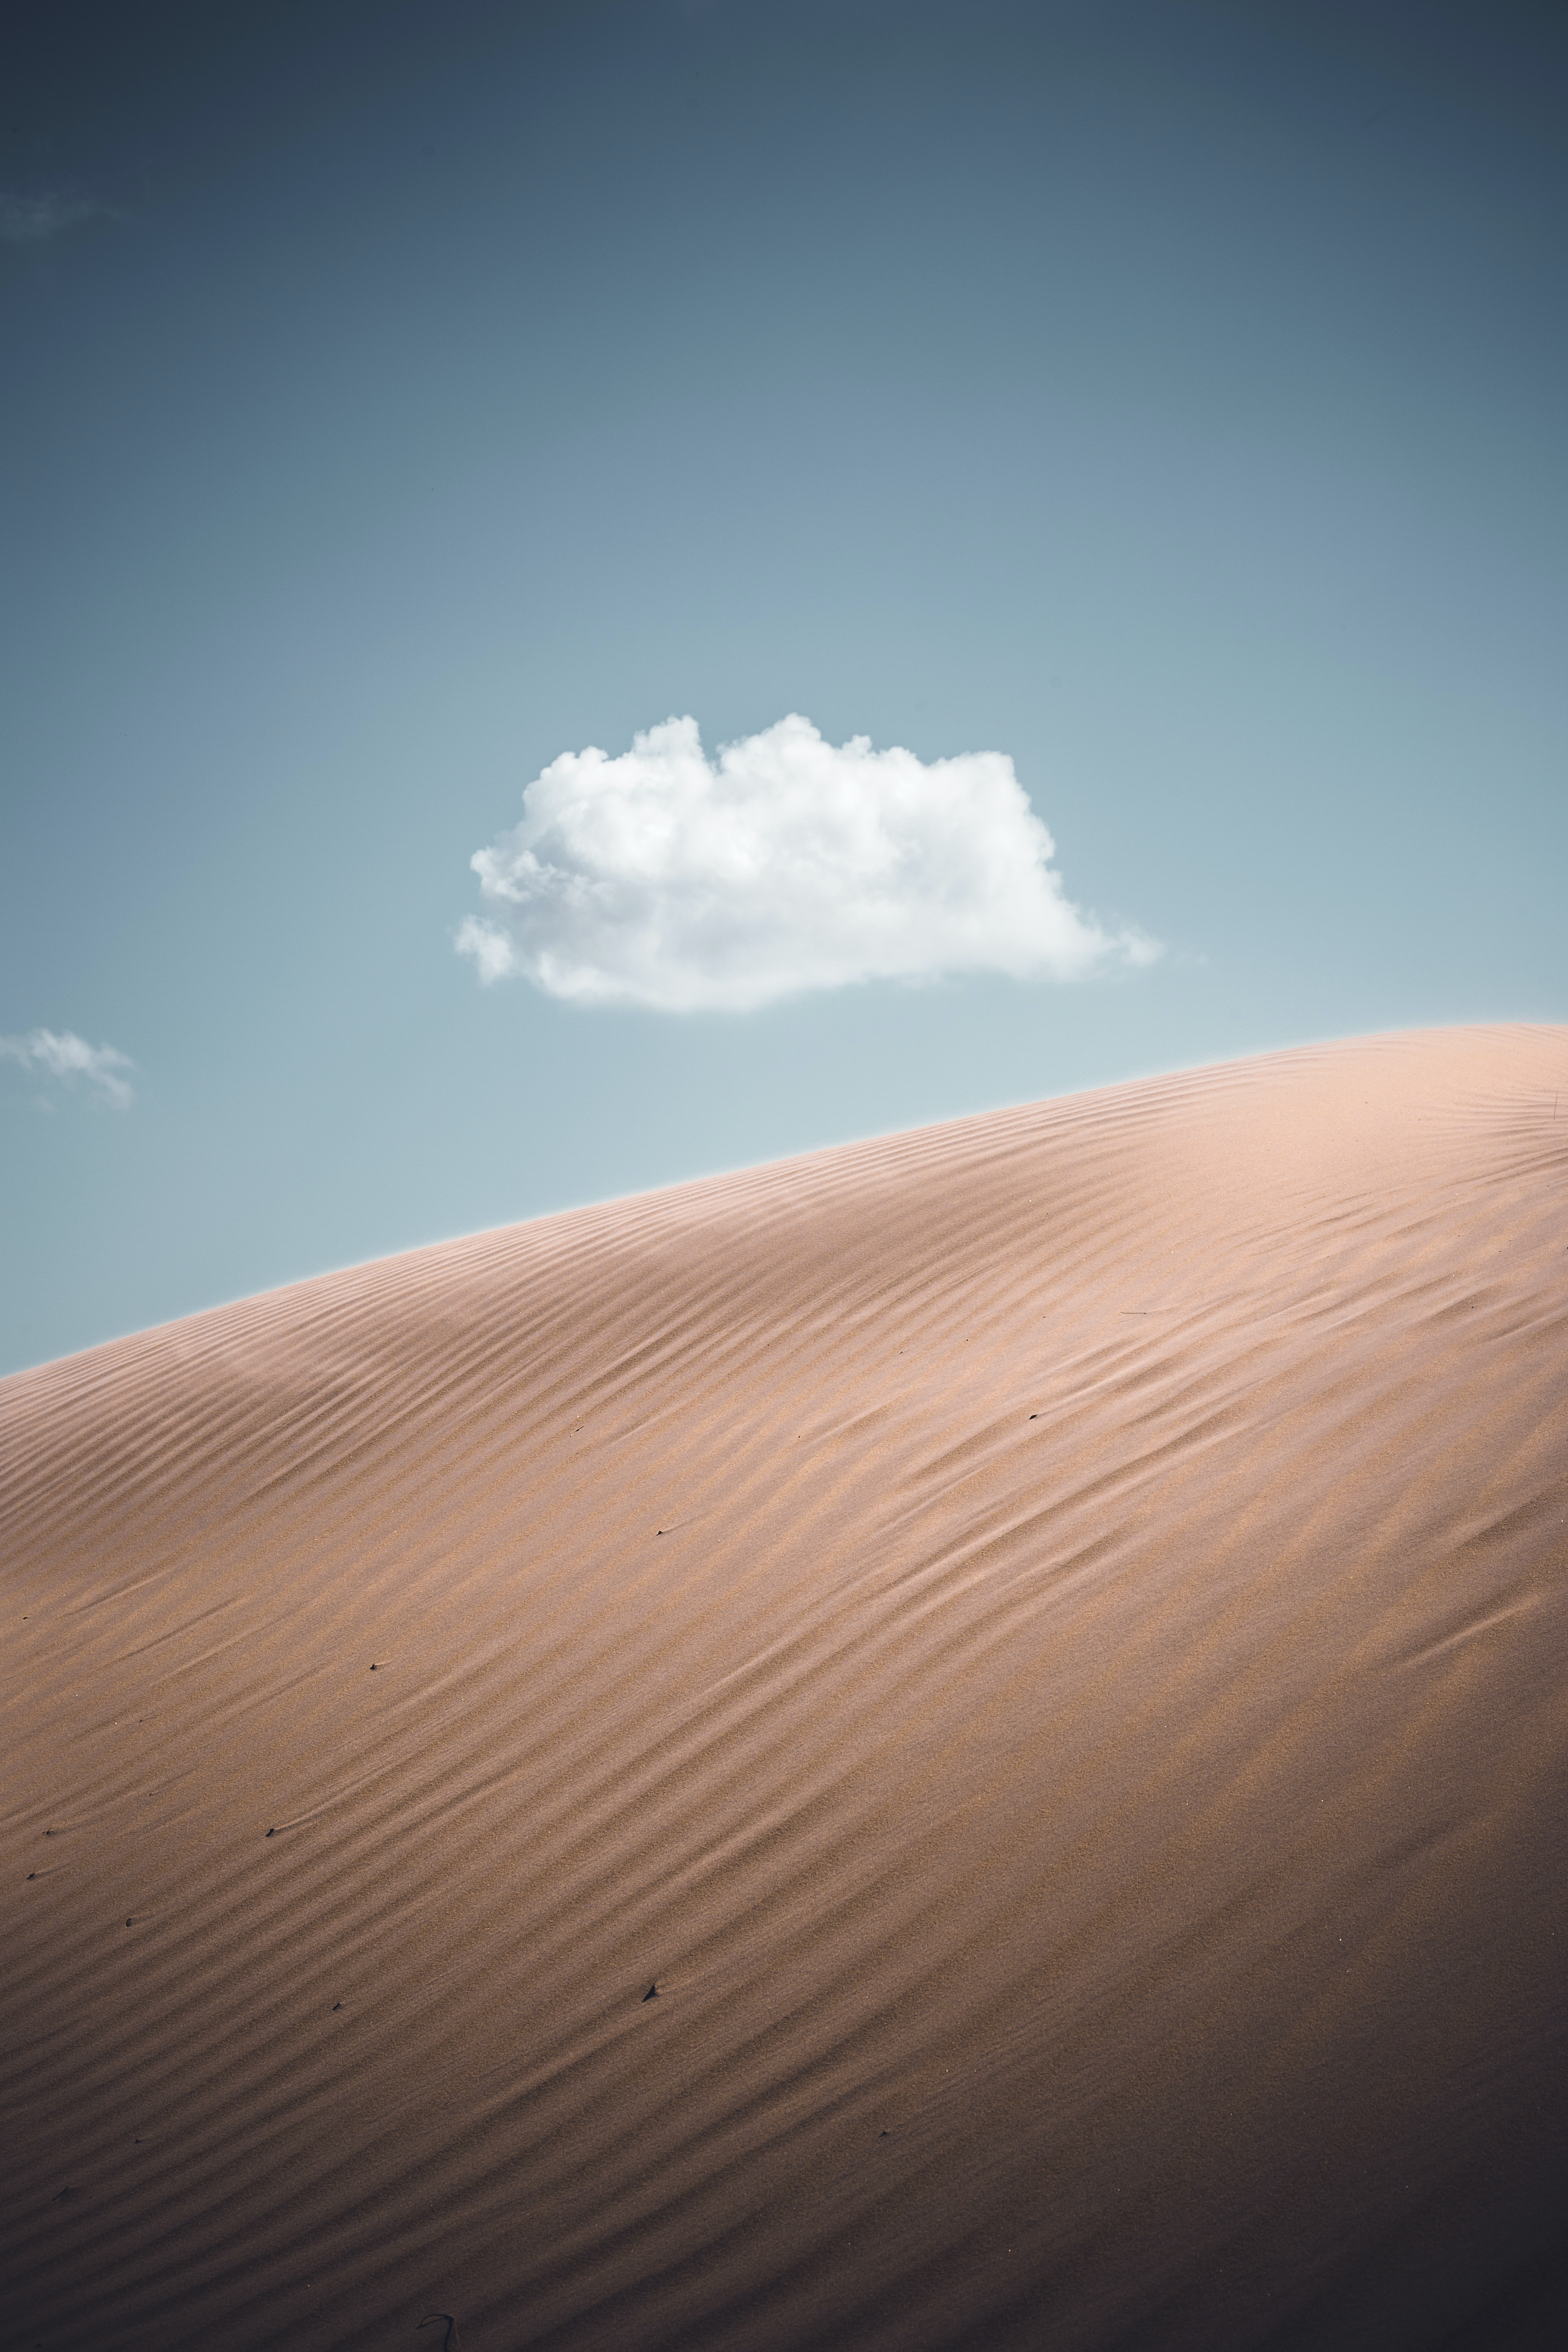 closeup photo of desert